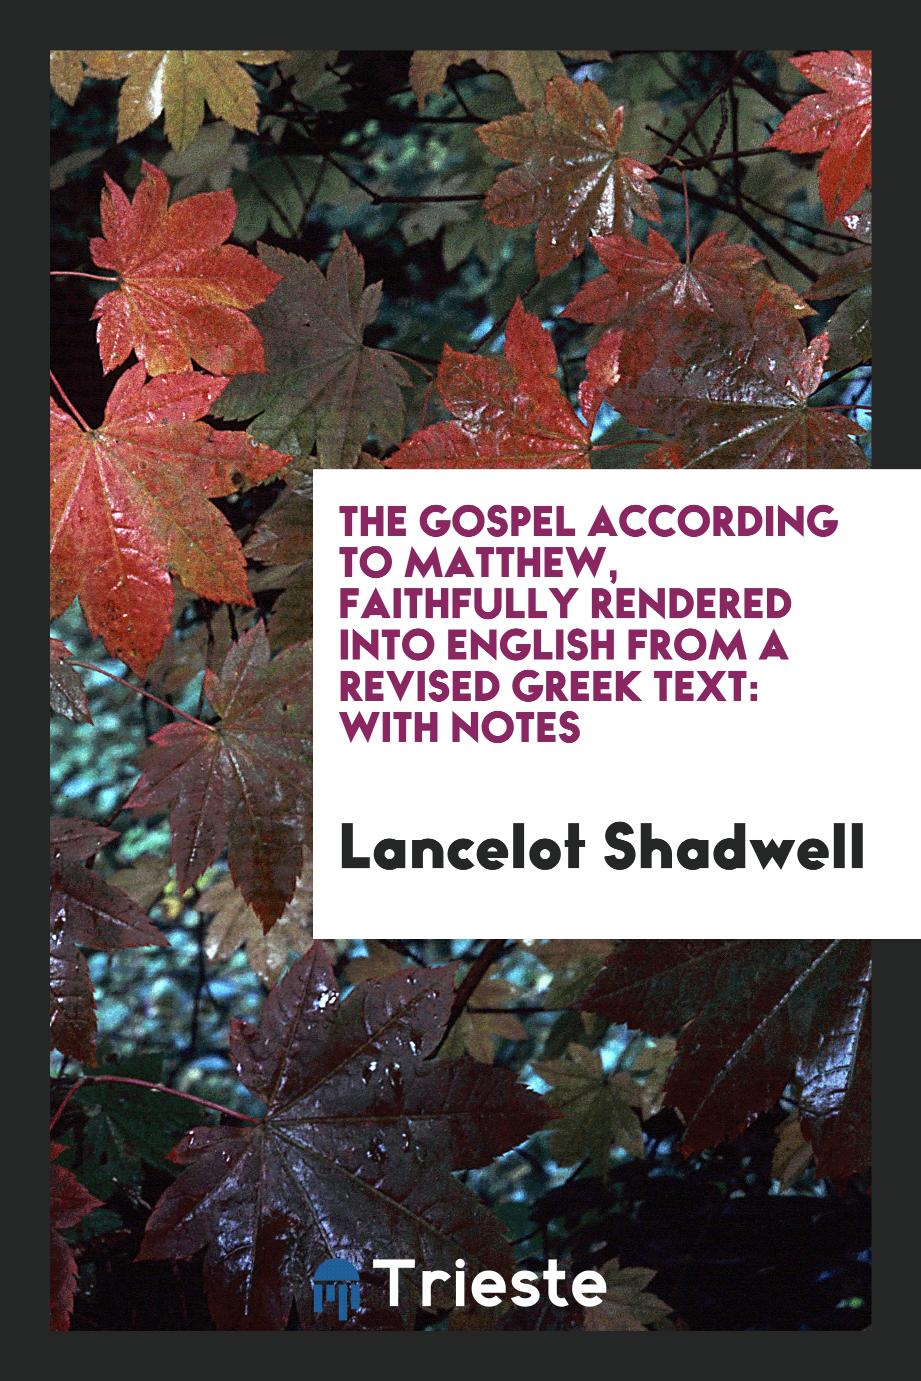 The Gospel According to Matthew, Faithfully Rendered into English from a Revised Greek Text: With Notes